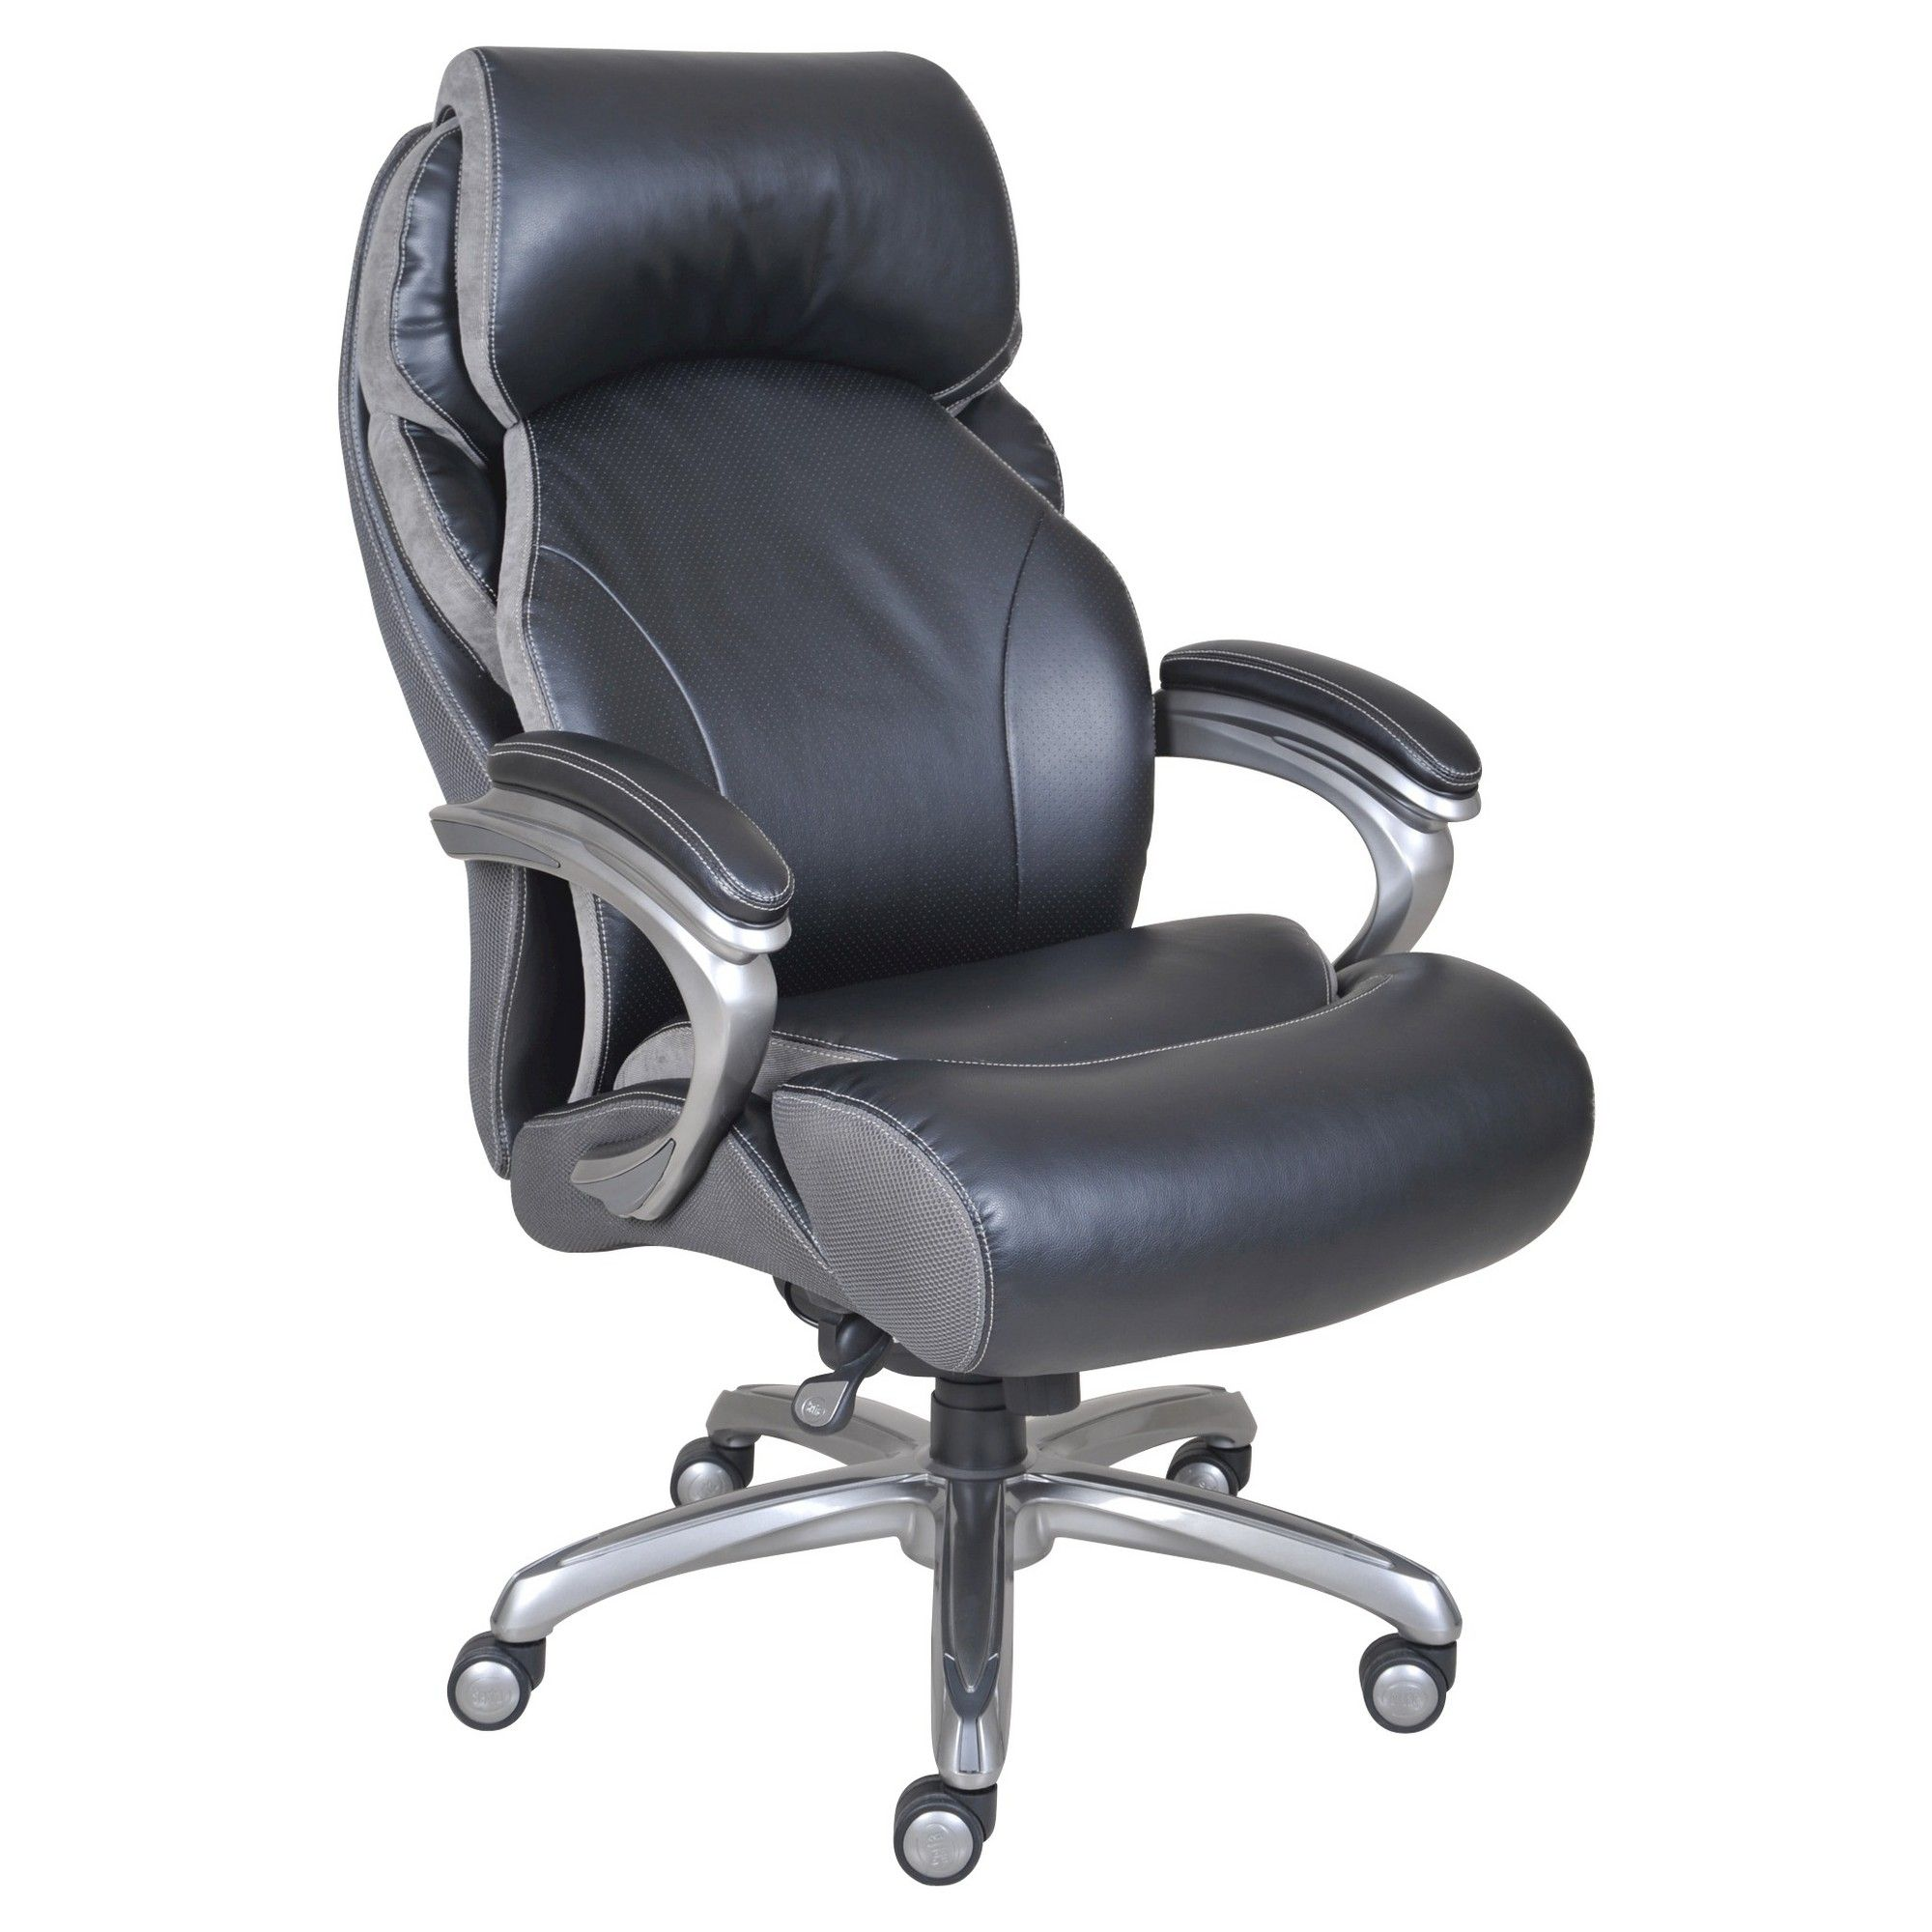 big man office chair. Big \u0026 Tall Smart Layers Premium Elite Executive Chair With Air-Bliss Black Multi-Tone-Leather - Serta Man Office I